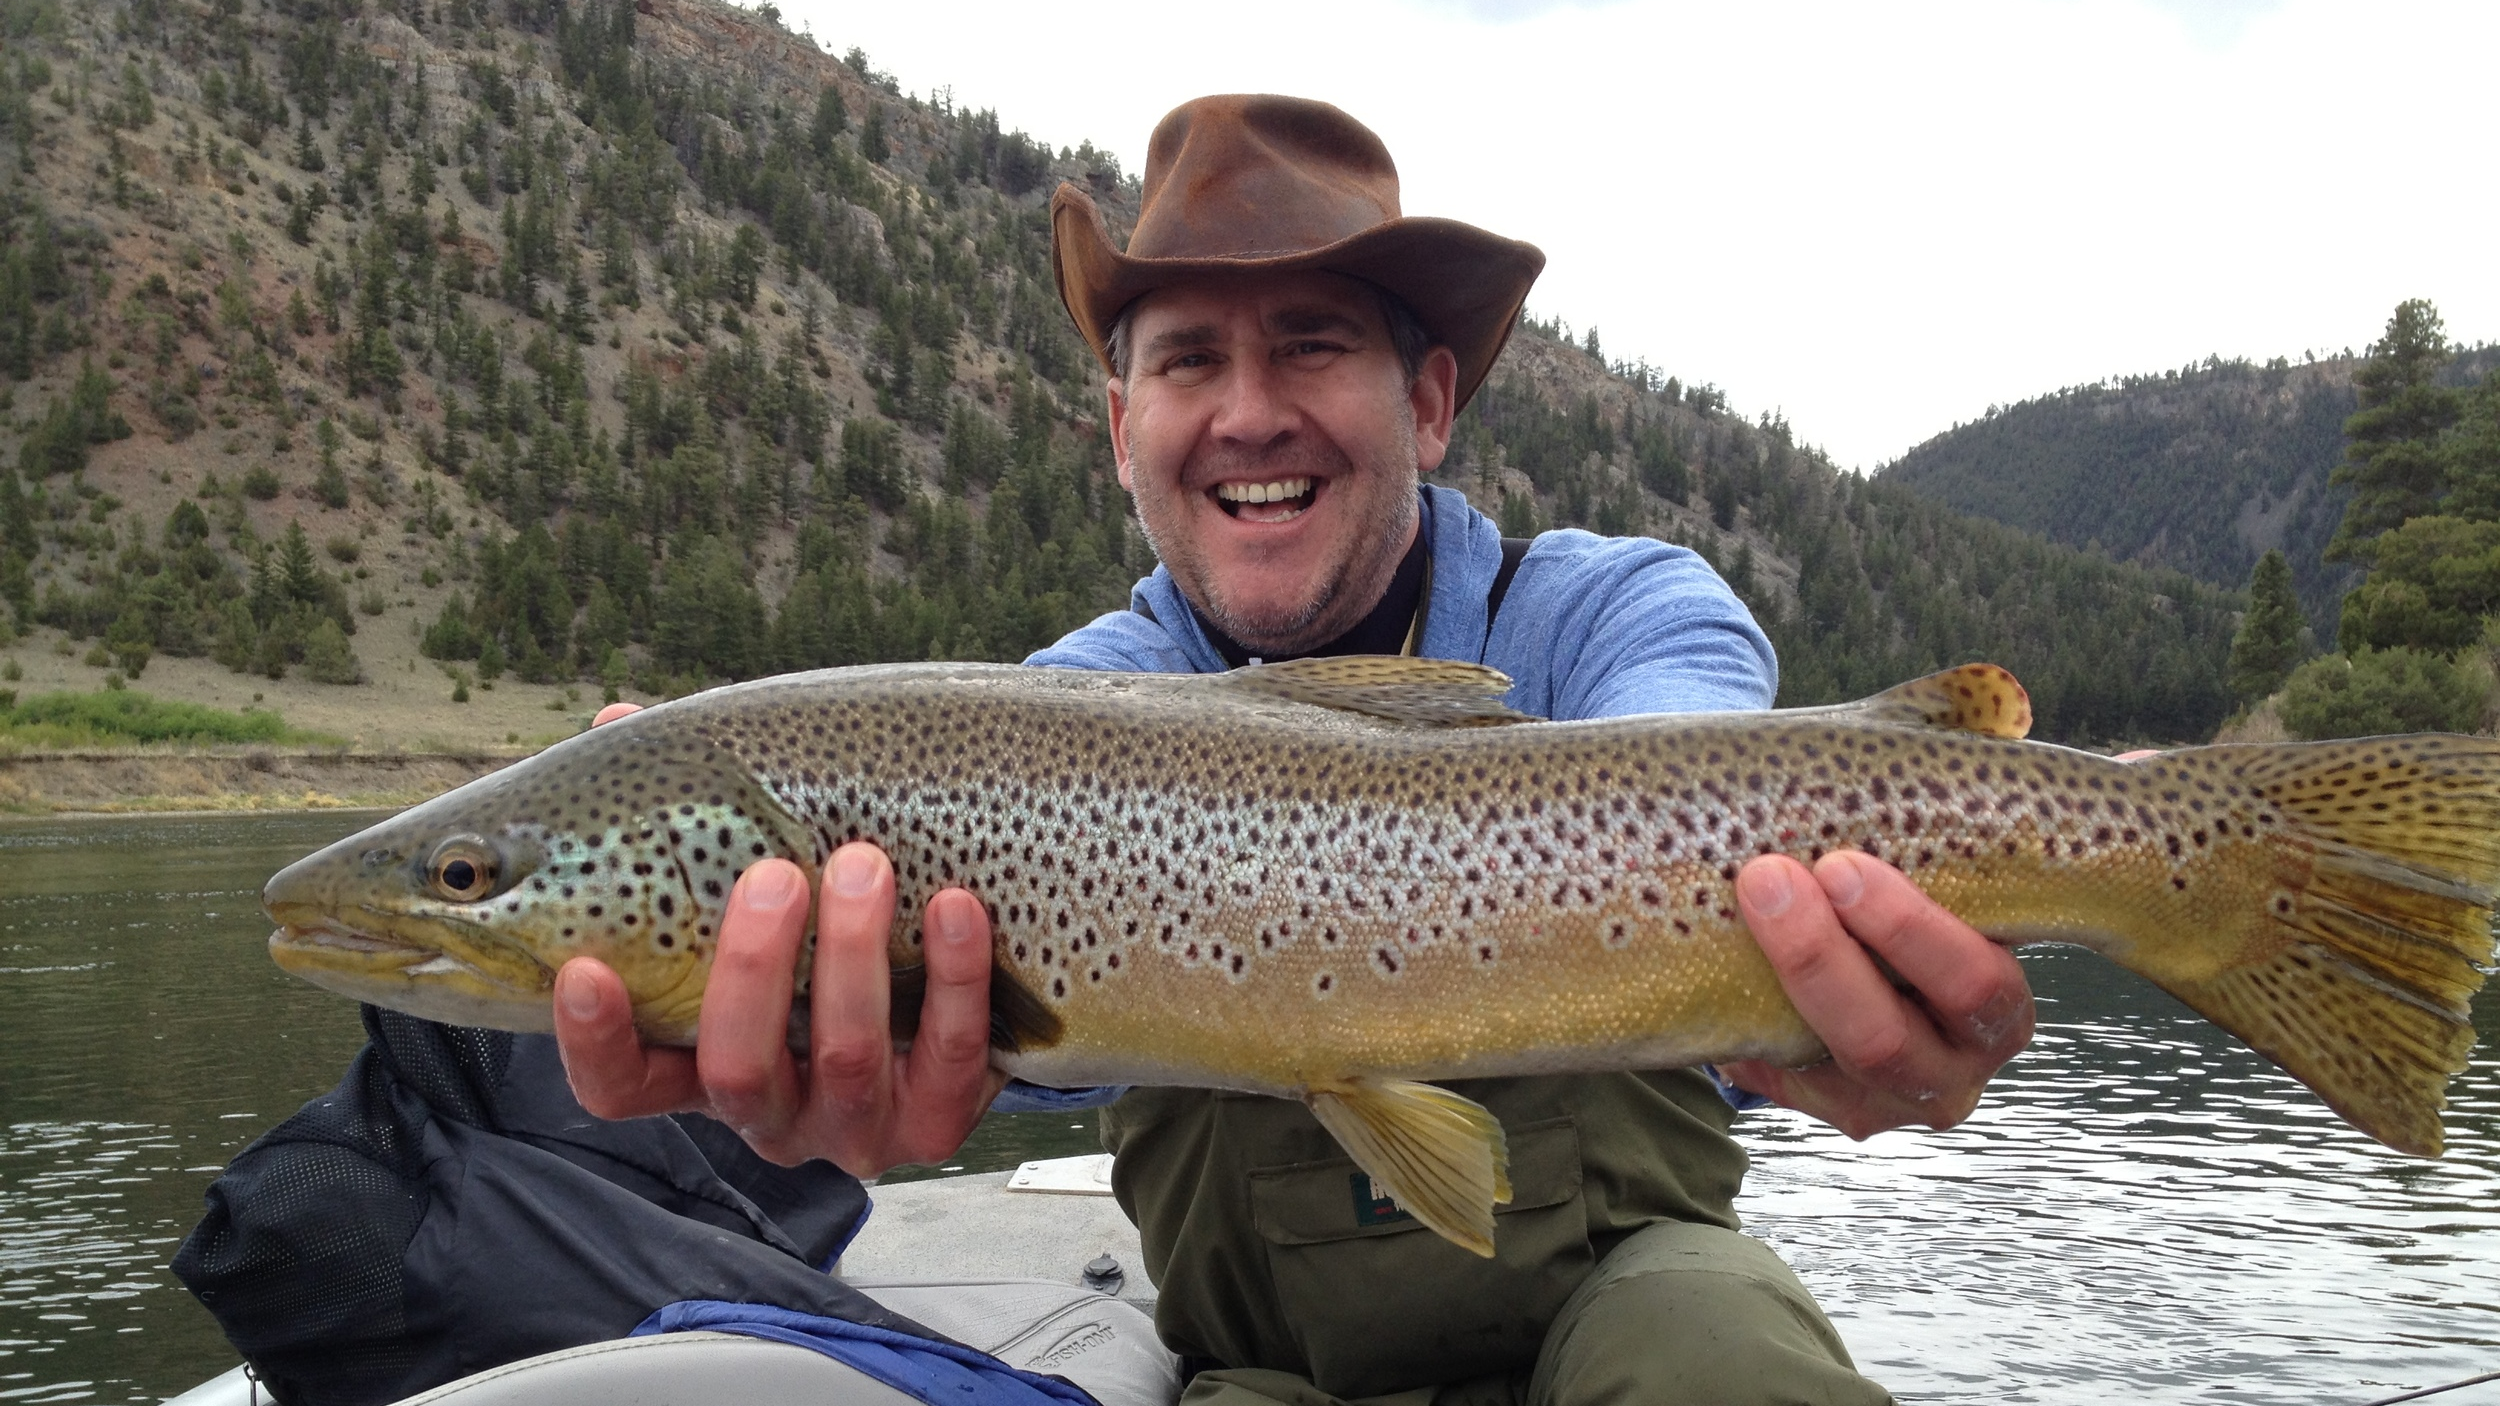 Big Brown Trout from Land of Giants.